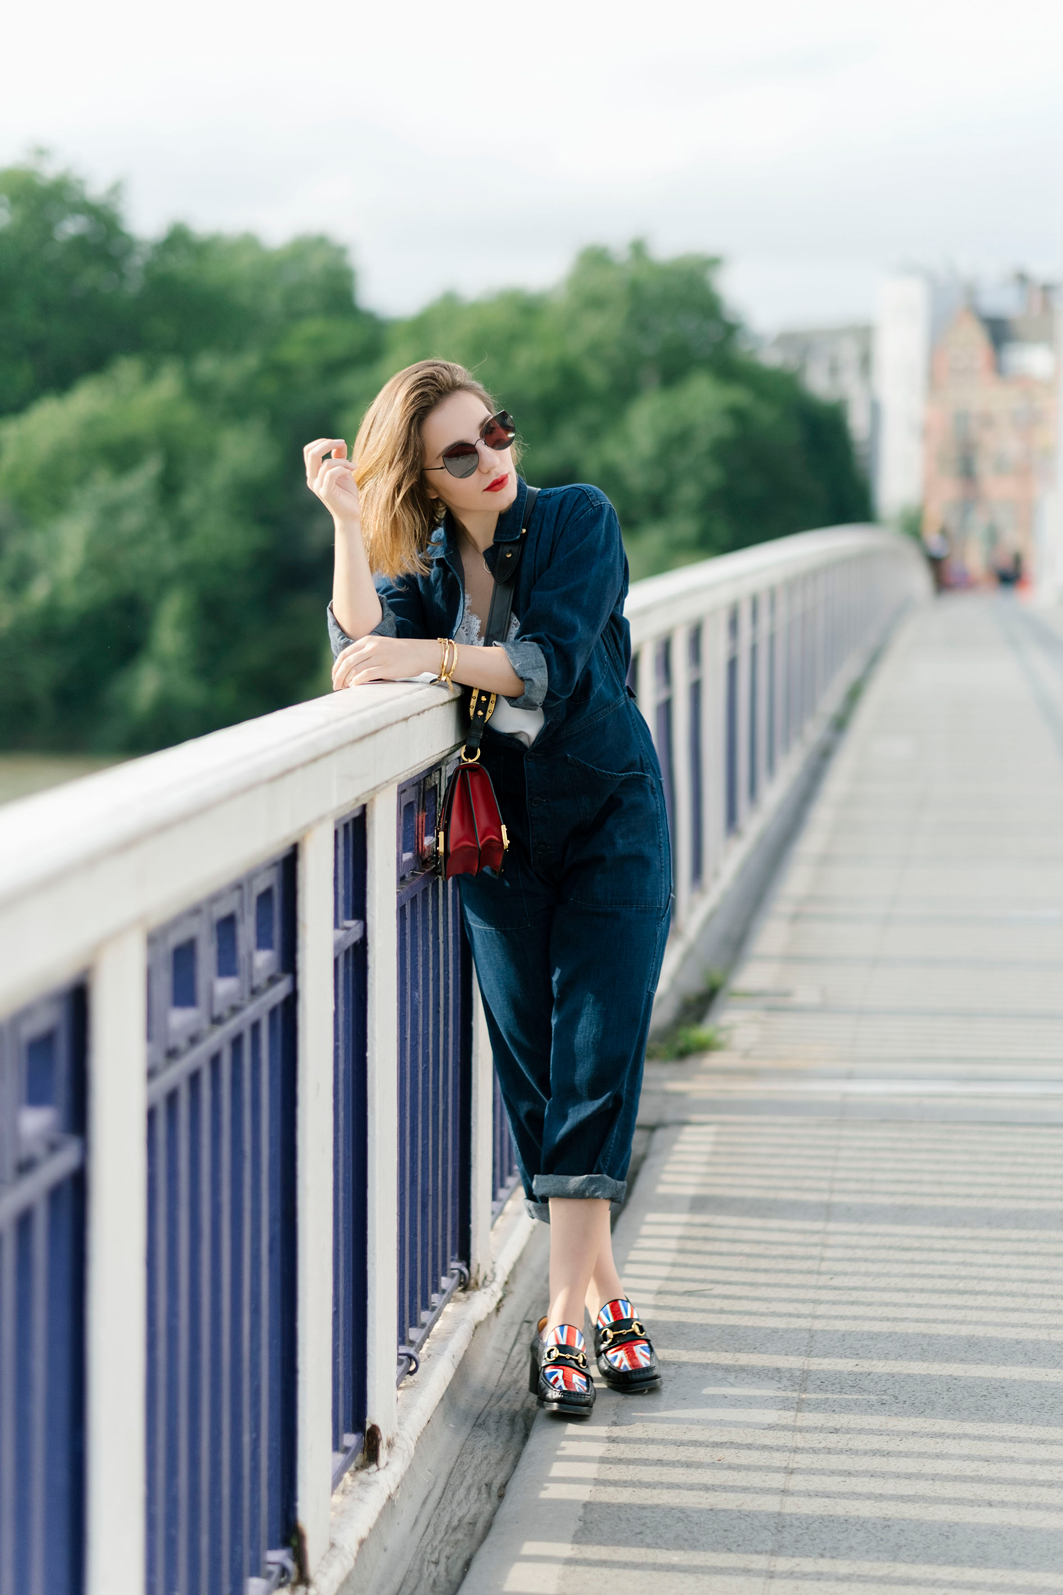 7 More Minutes. Fashion, travel and lifestyle blog by Alyona Gasimova. In Transit. How To Style A Denim Jumpsuit. www.7moreminutes.com